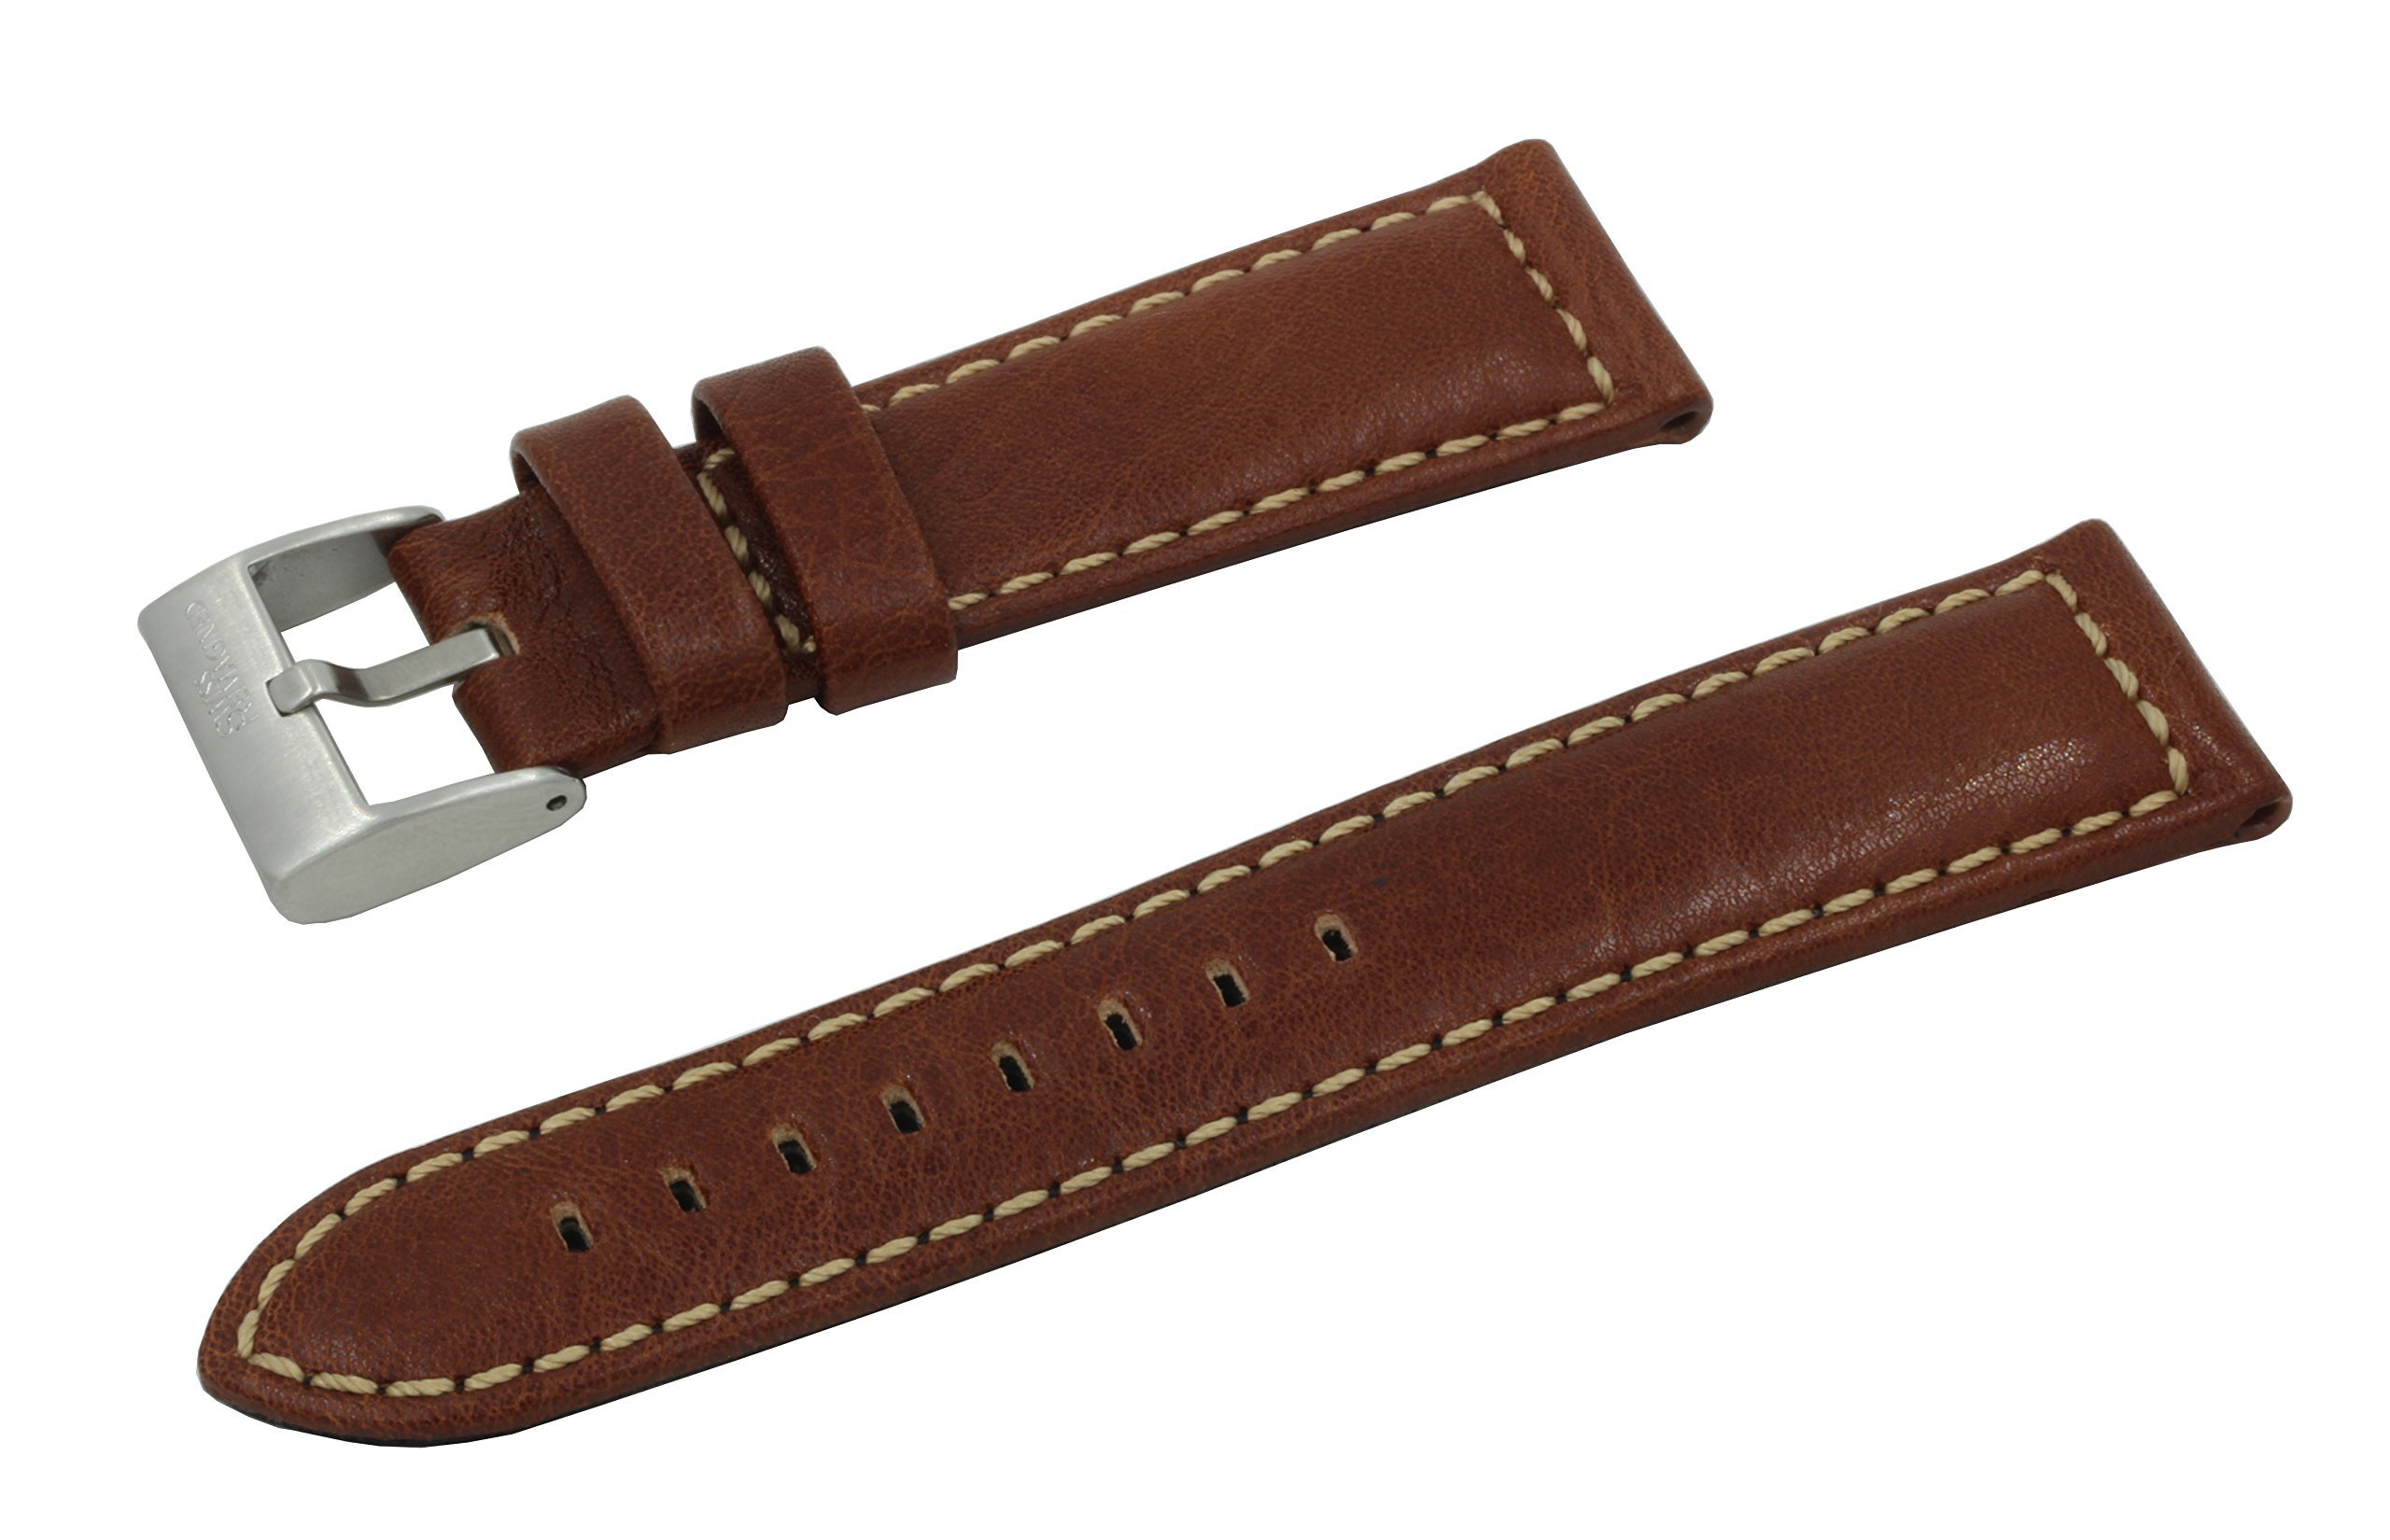 SWISS REIMAGINED 4 Colors Genuine Leather Quality Replacement Watch Band Strap - Tan by SWISS REIMAGINED